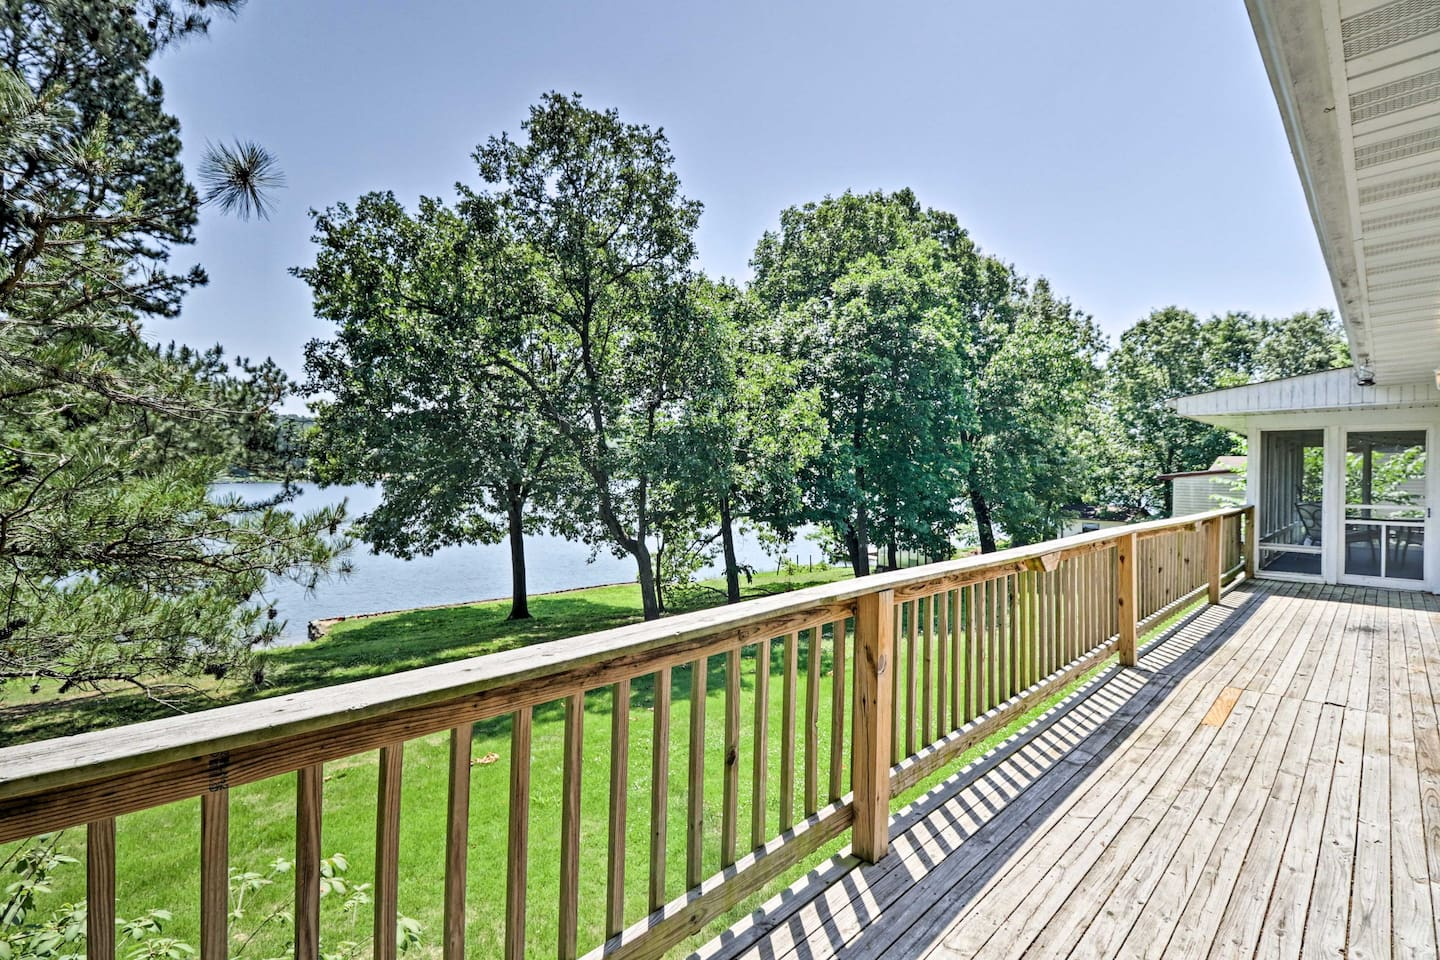 Escape to the Ozarks and stay at this vacation rental house!